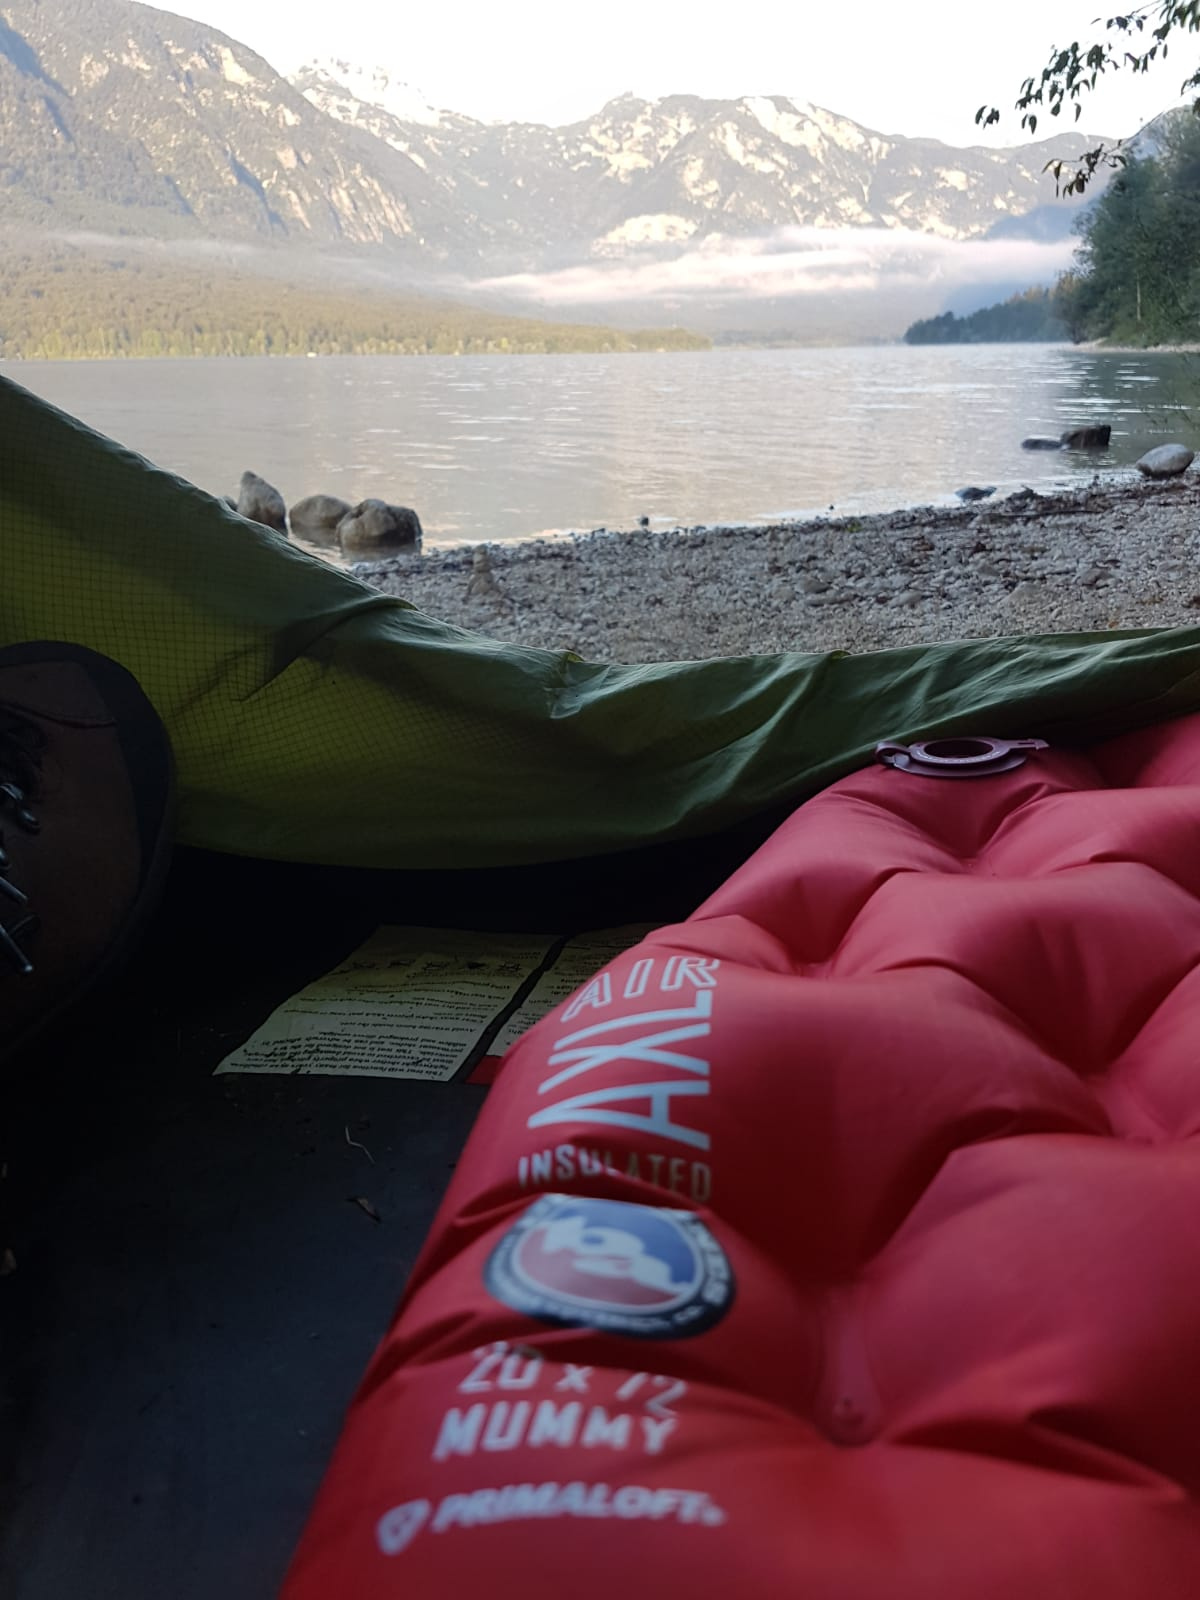 Big Agnes AXL Air Insulated Isomatte - Produkttest in Slowenien